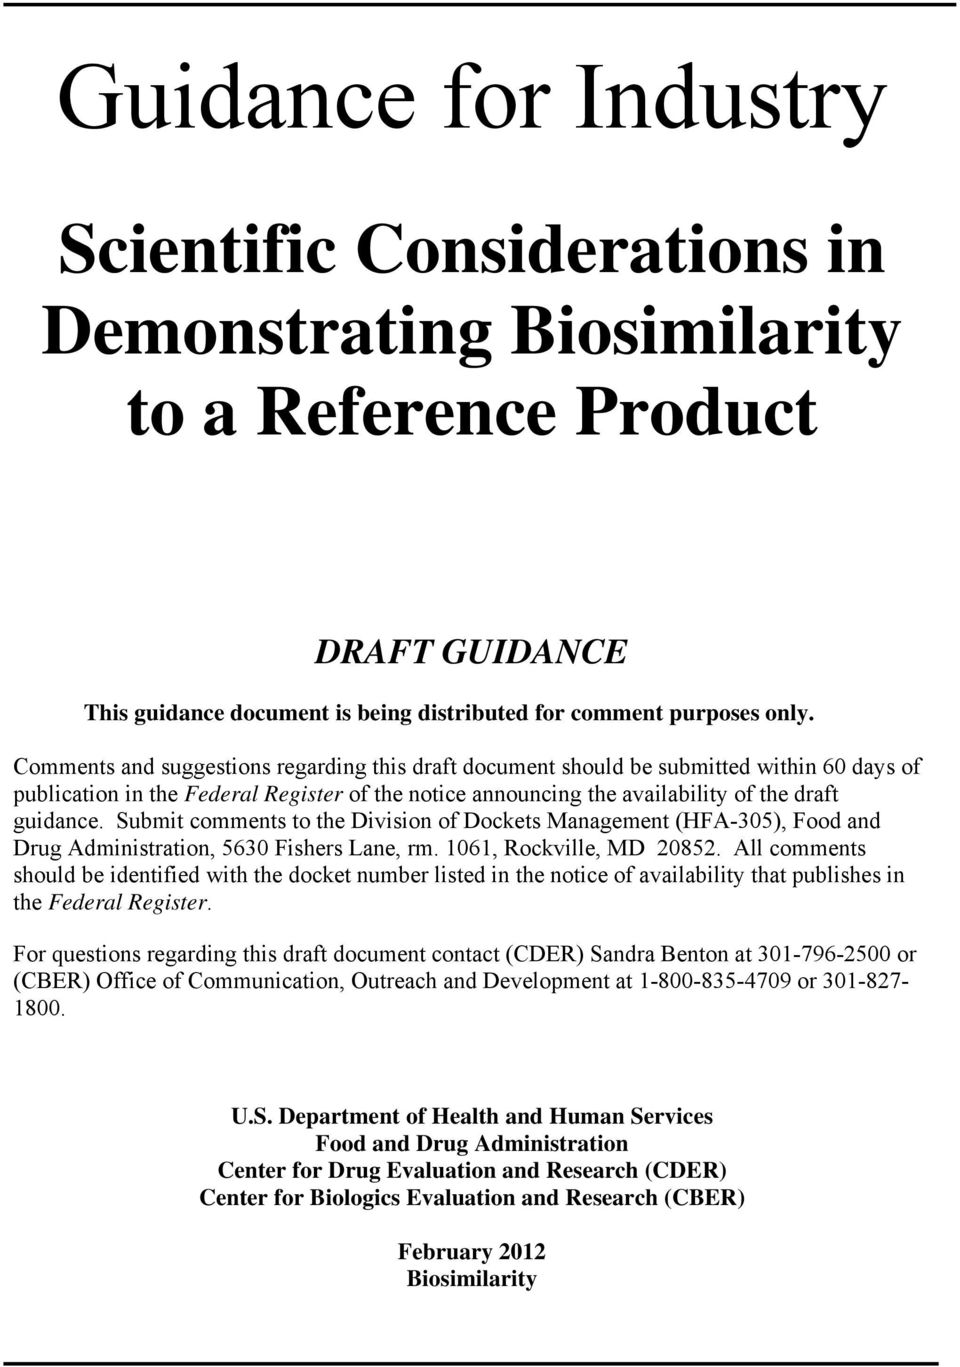 Submit comments to the Division of Dockets Management (HFA-305), Food and Drug Administration, 5630 Fishers Lane, rm. 1061, Rockville, MD 20852.